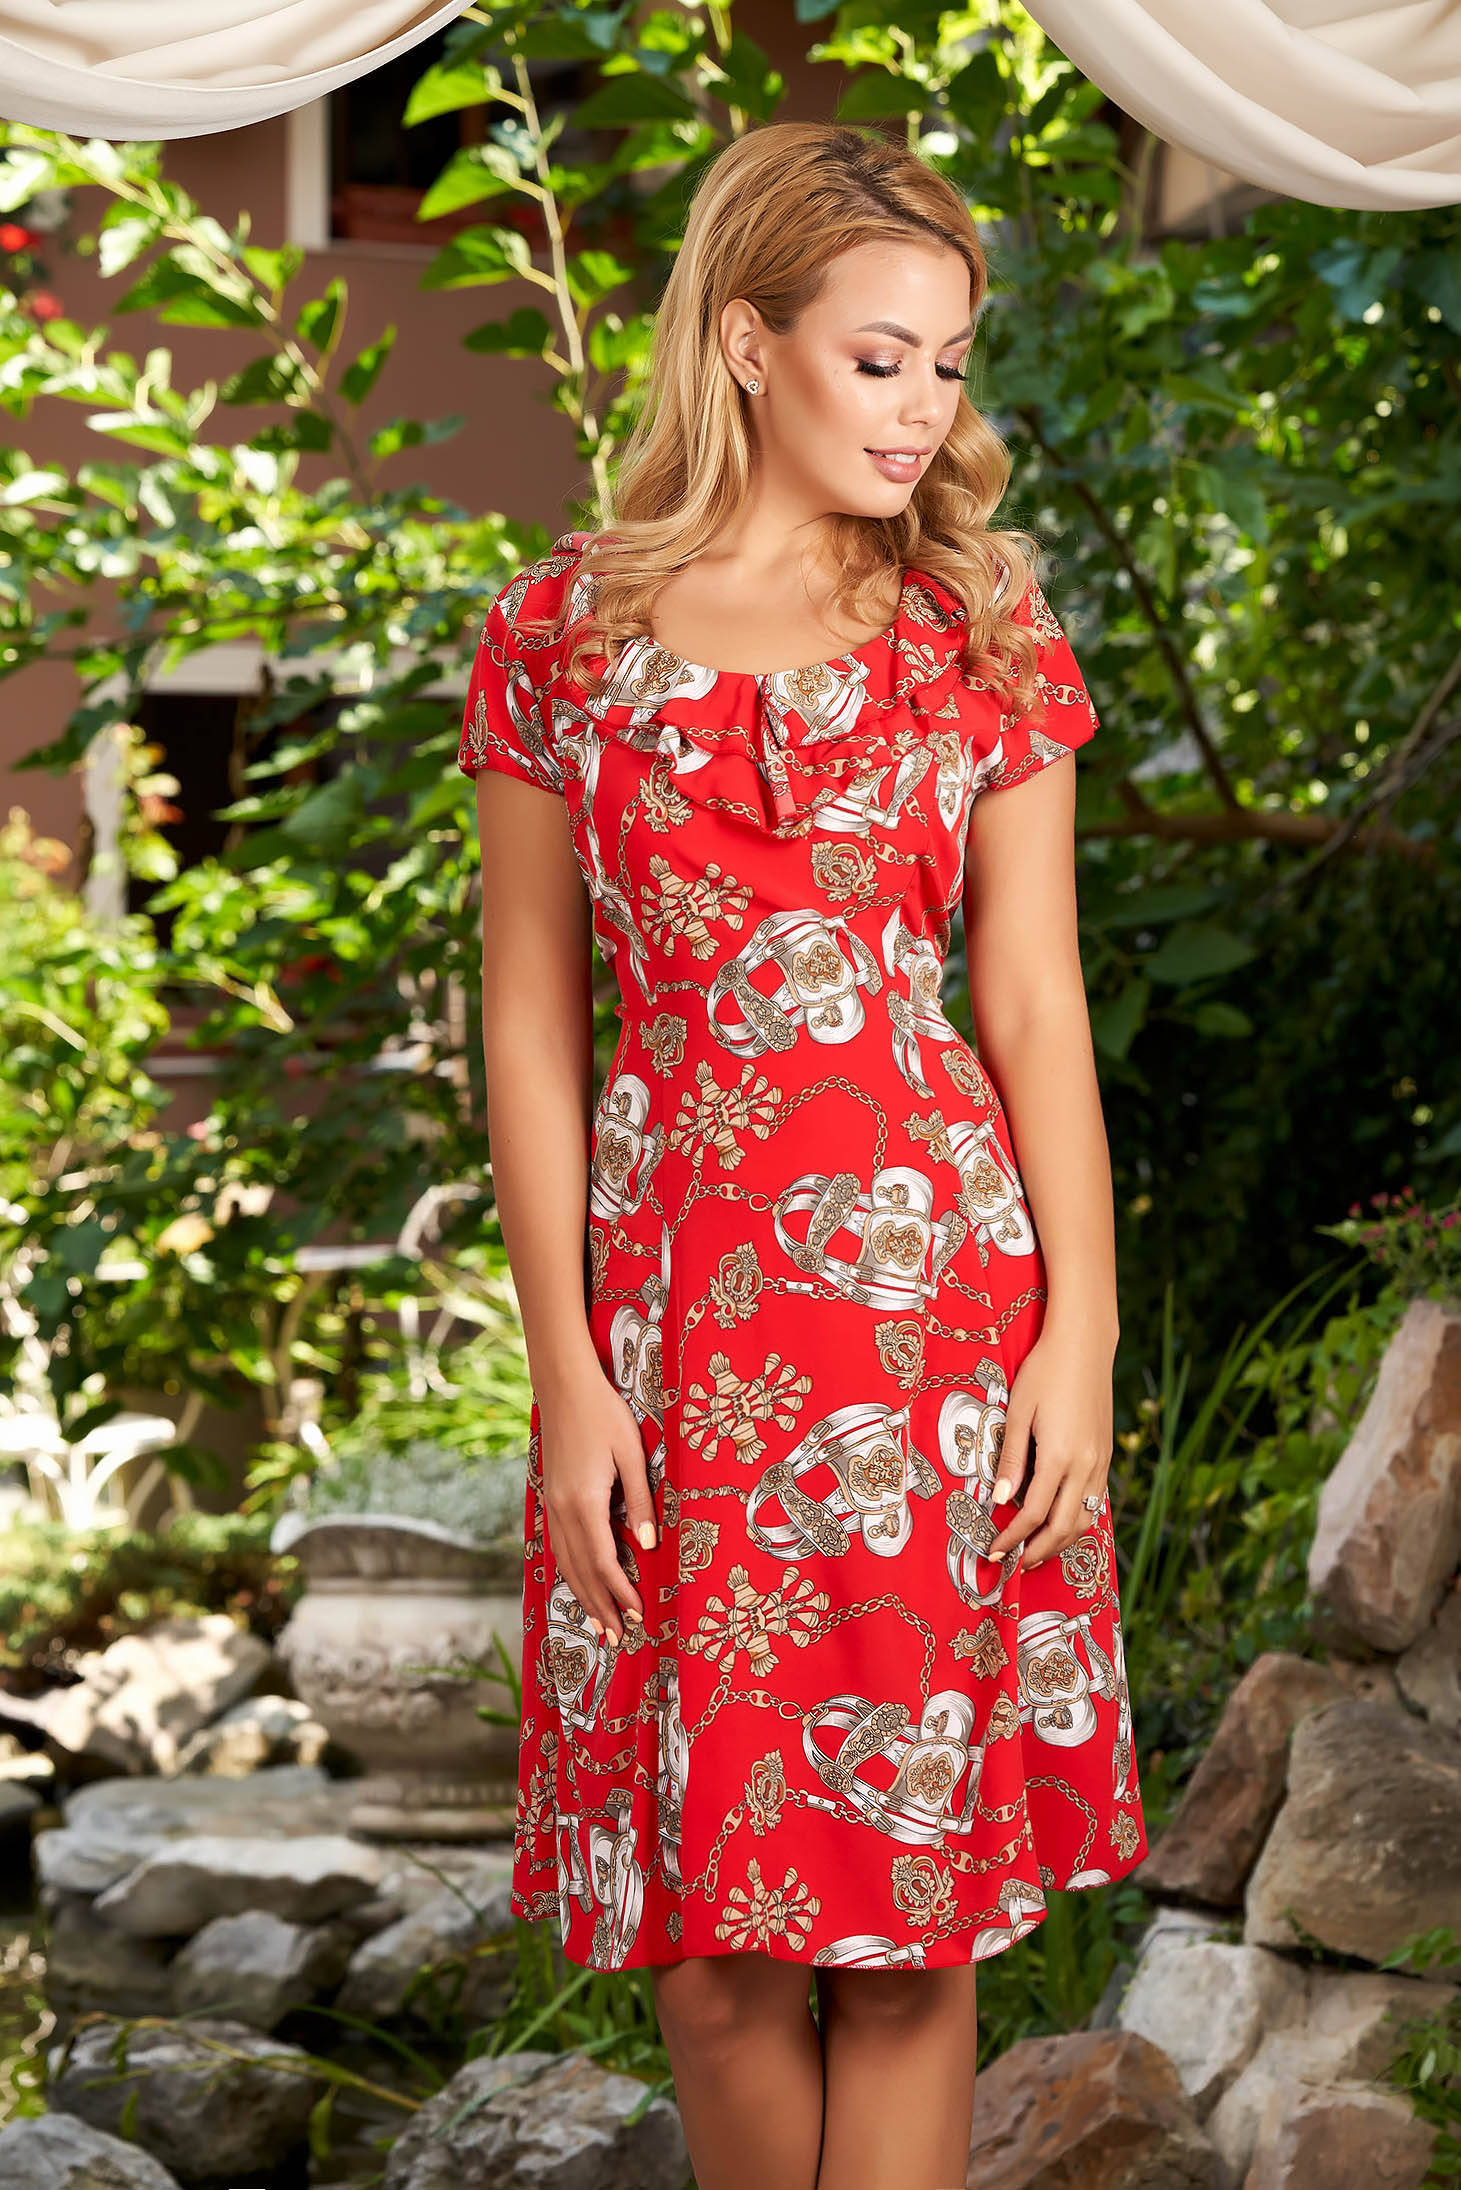 Red dress daily cloche short sleeves frilly trim around cleavage line with graphic details